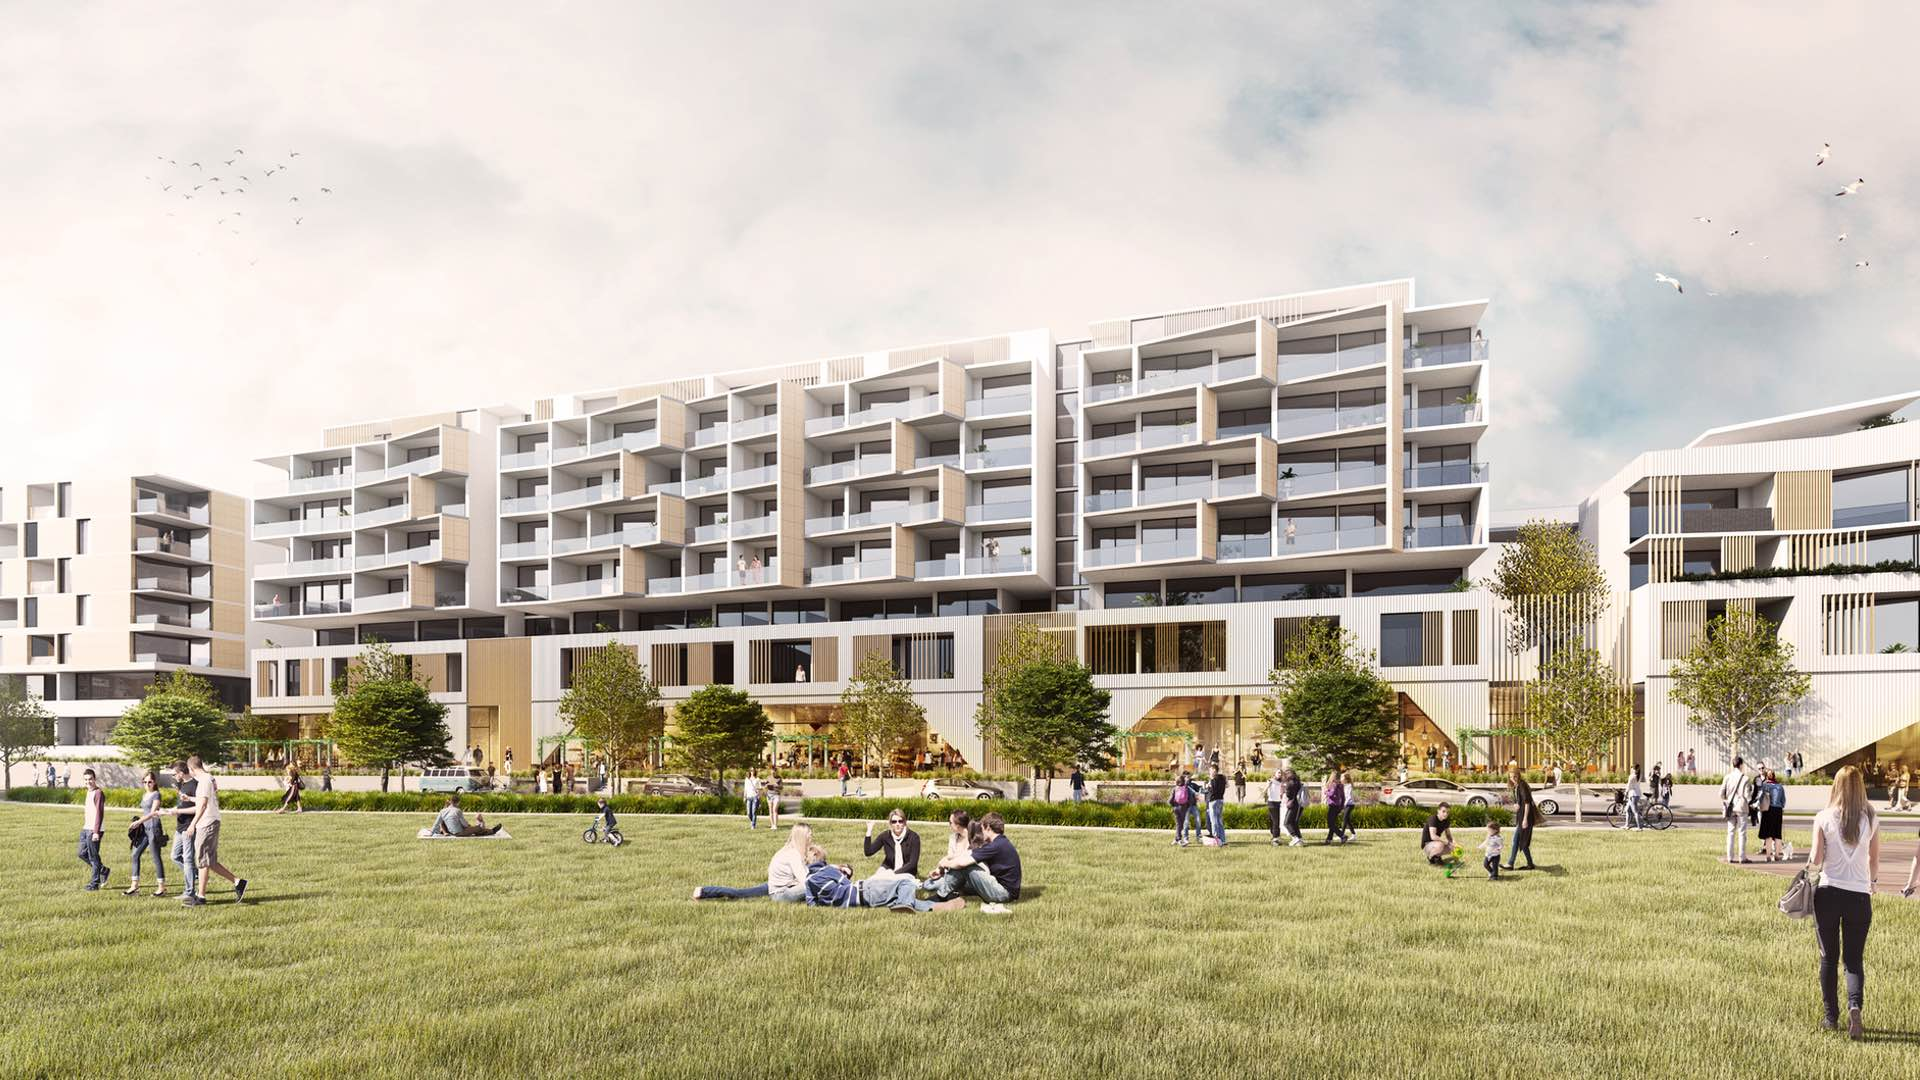 Park Sydney is Erskineville's Massive New Community Hub